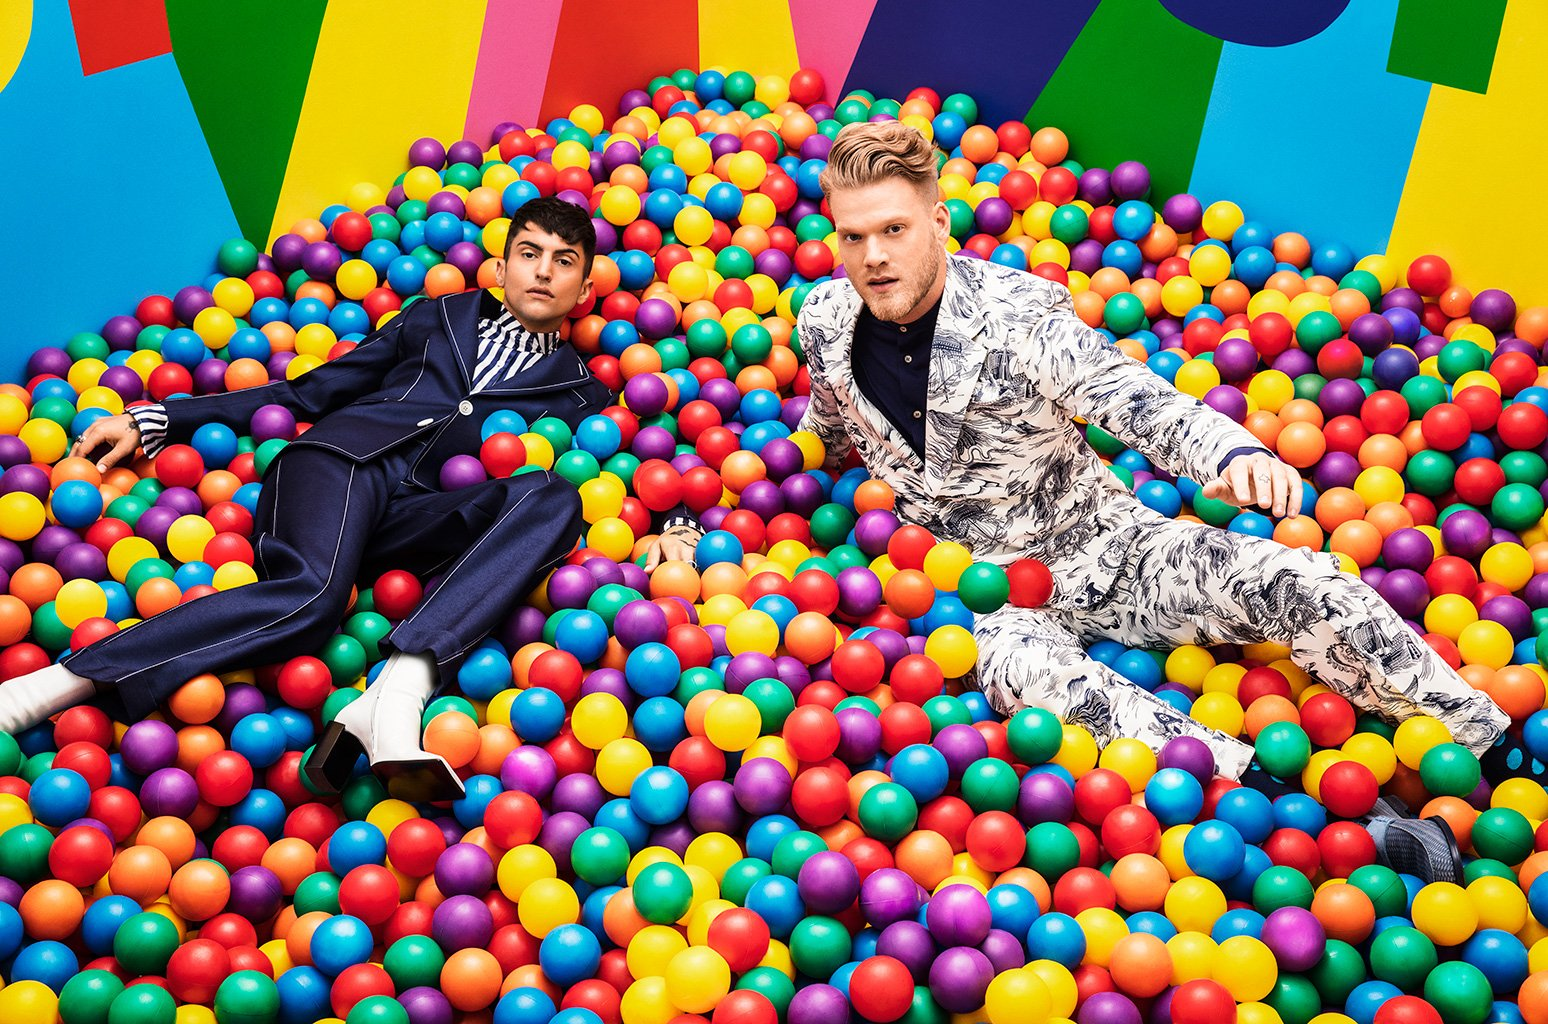 .@SUP3RFRUIT is hitting the road in May for their 'Future Friends' North American tour https://t.co/Wa9nopd4k0 https://t.co/CflHm2Er1u